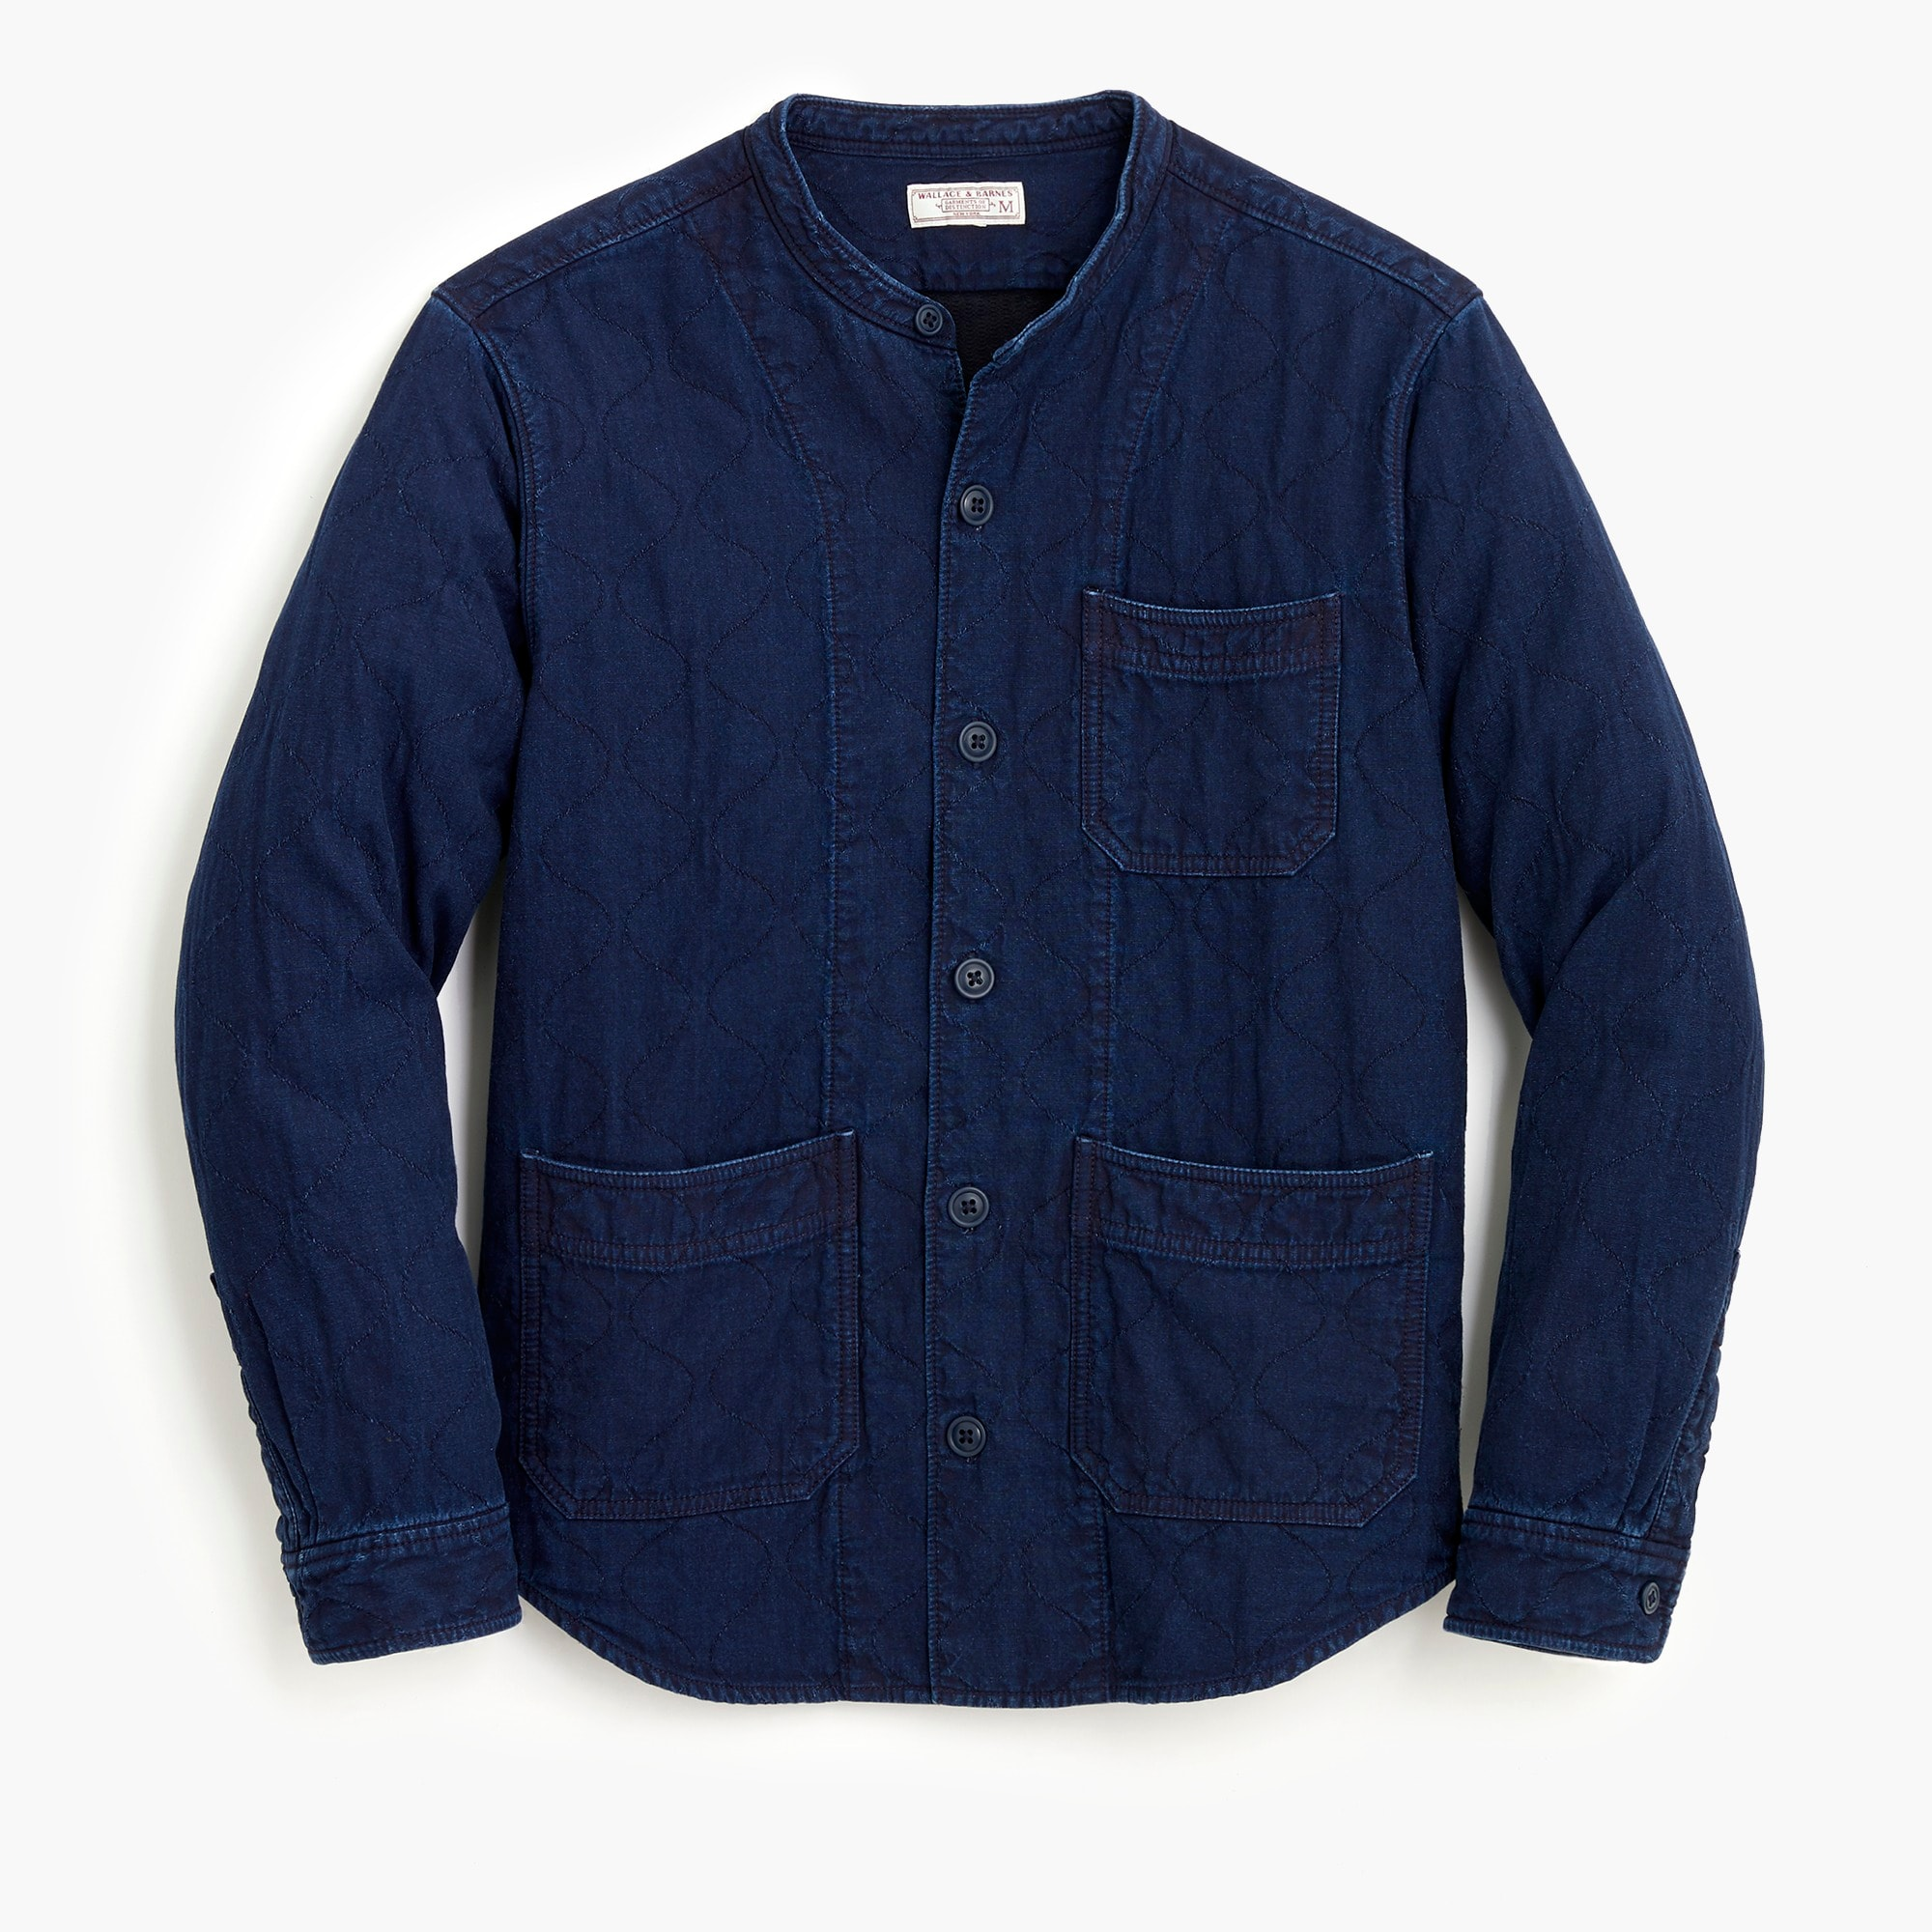 mens Quilted indigo shirt-jacket with band collar